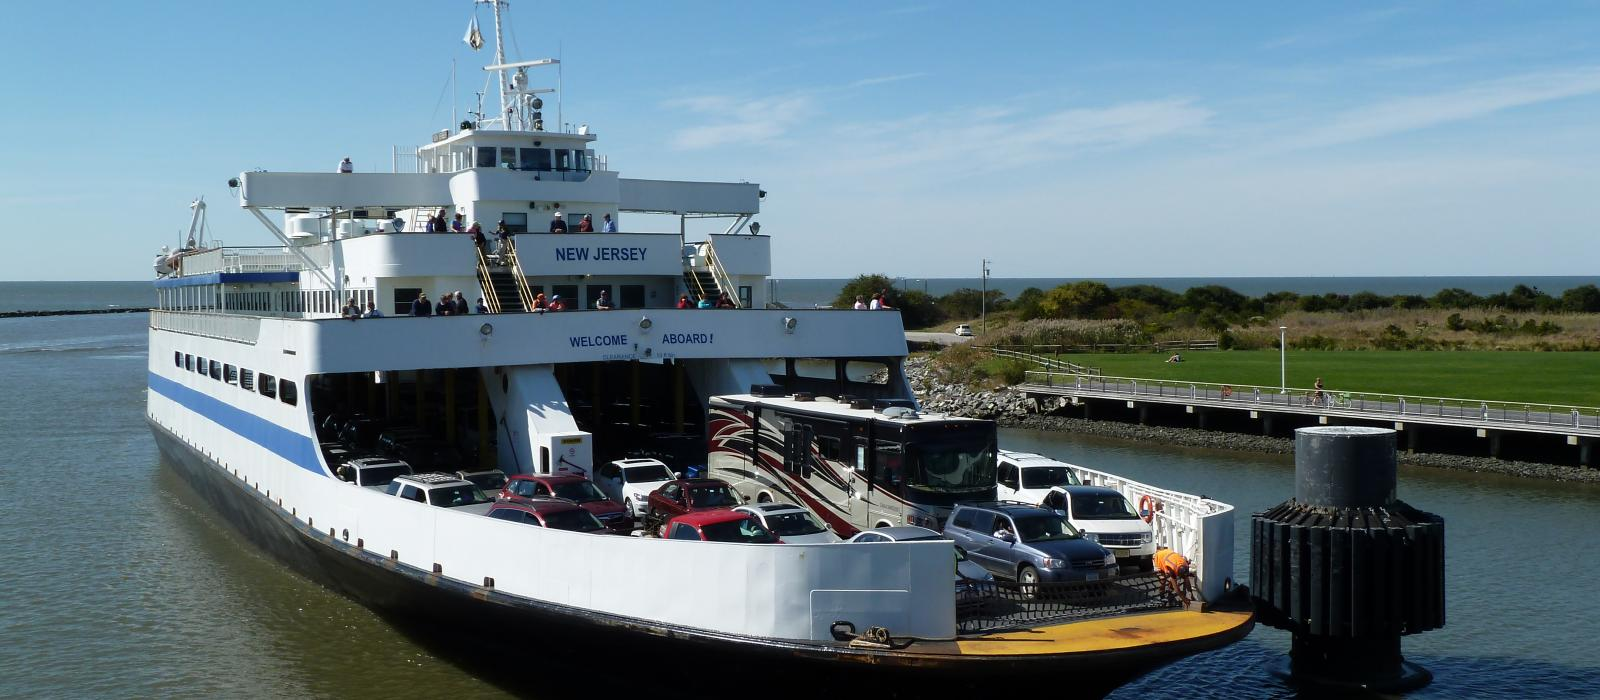 about the cape may-lewes ferry | cape may-lewes ferry